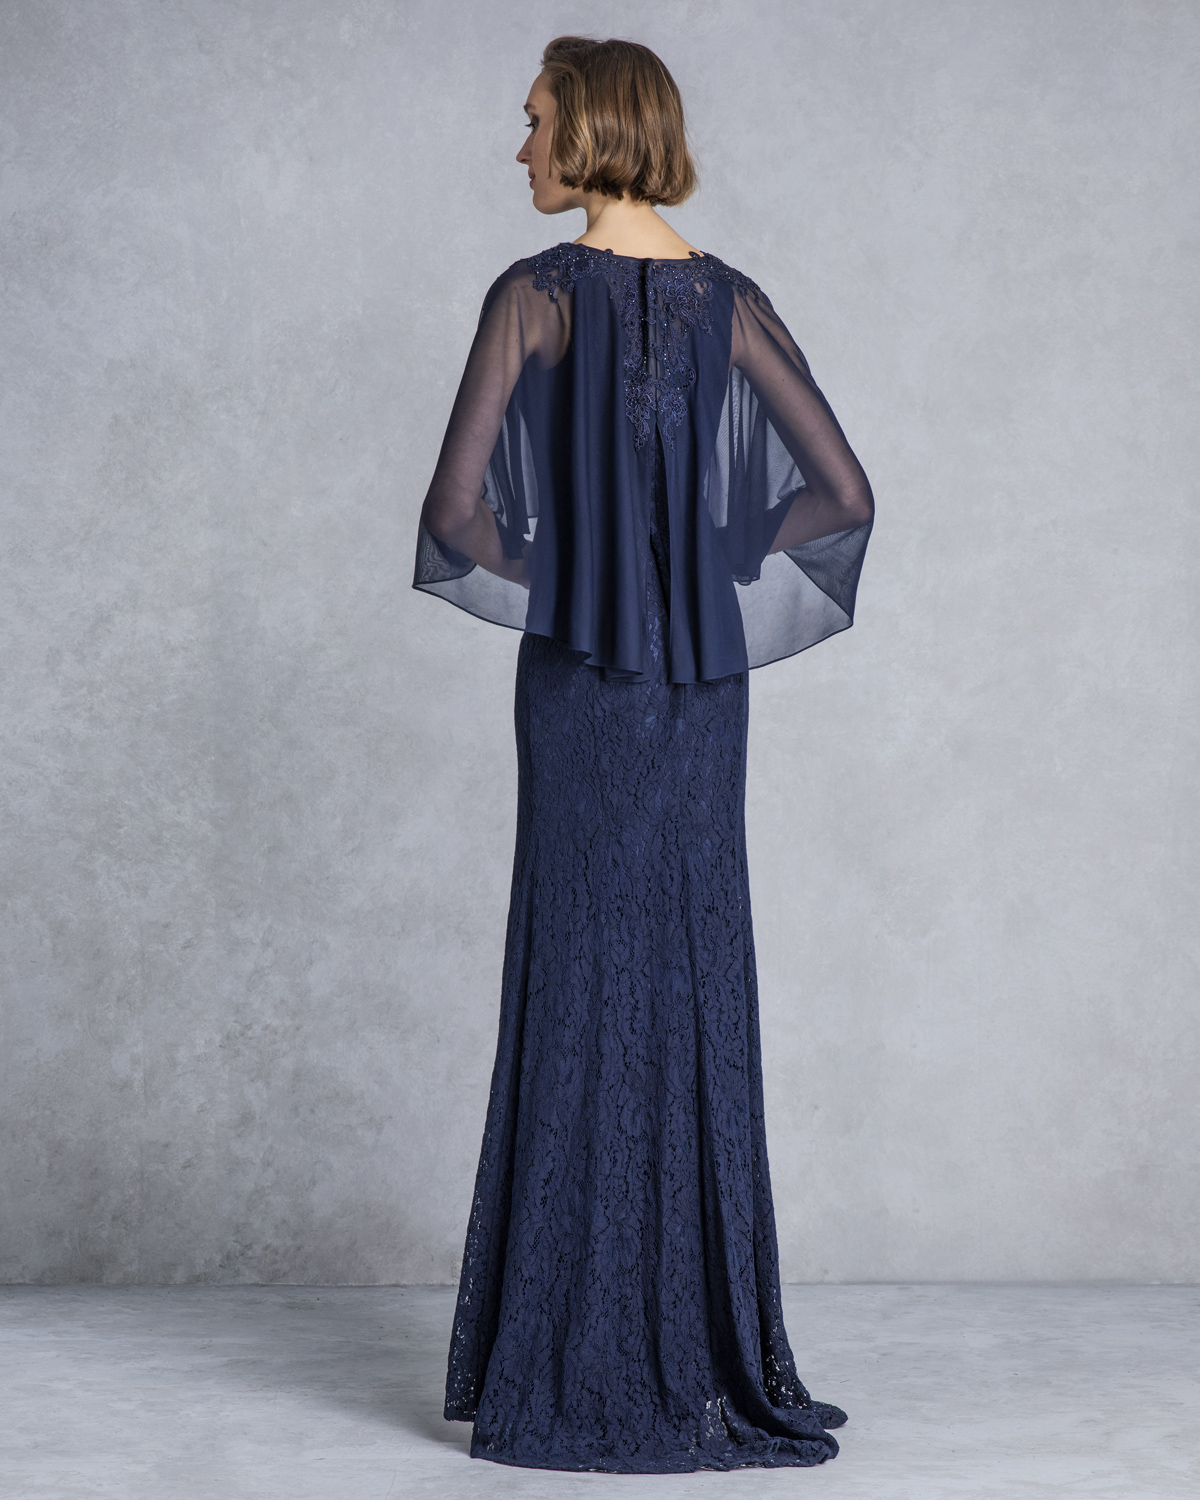 Classic Dresses / Long evening dress with lace skirt and cape